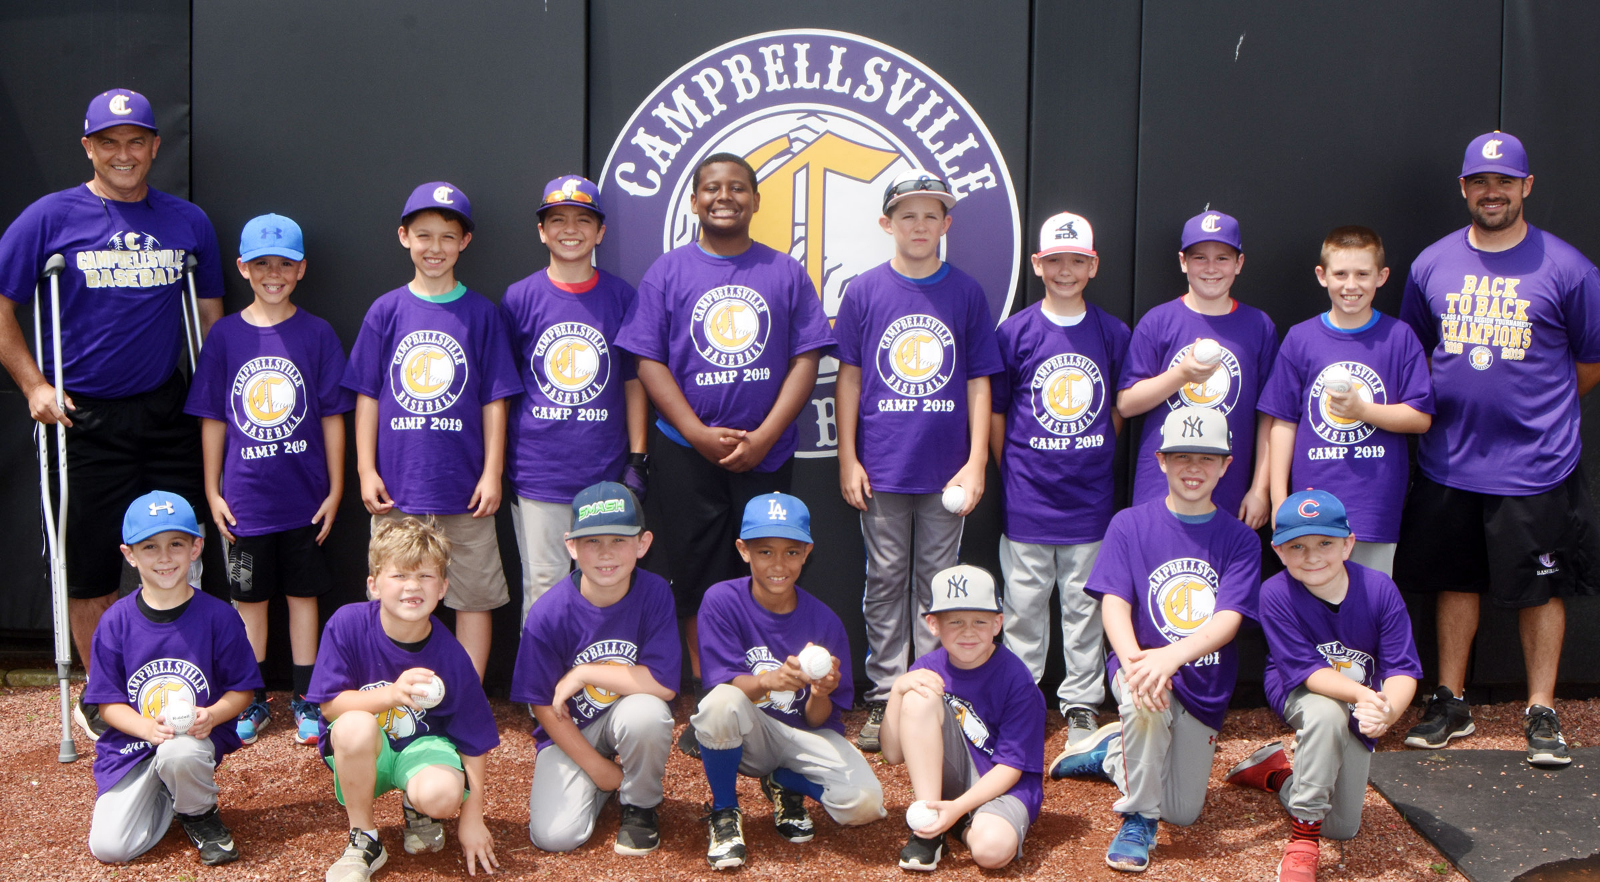 CHS baseball team hosts youth camp